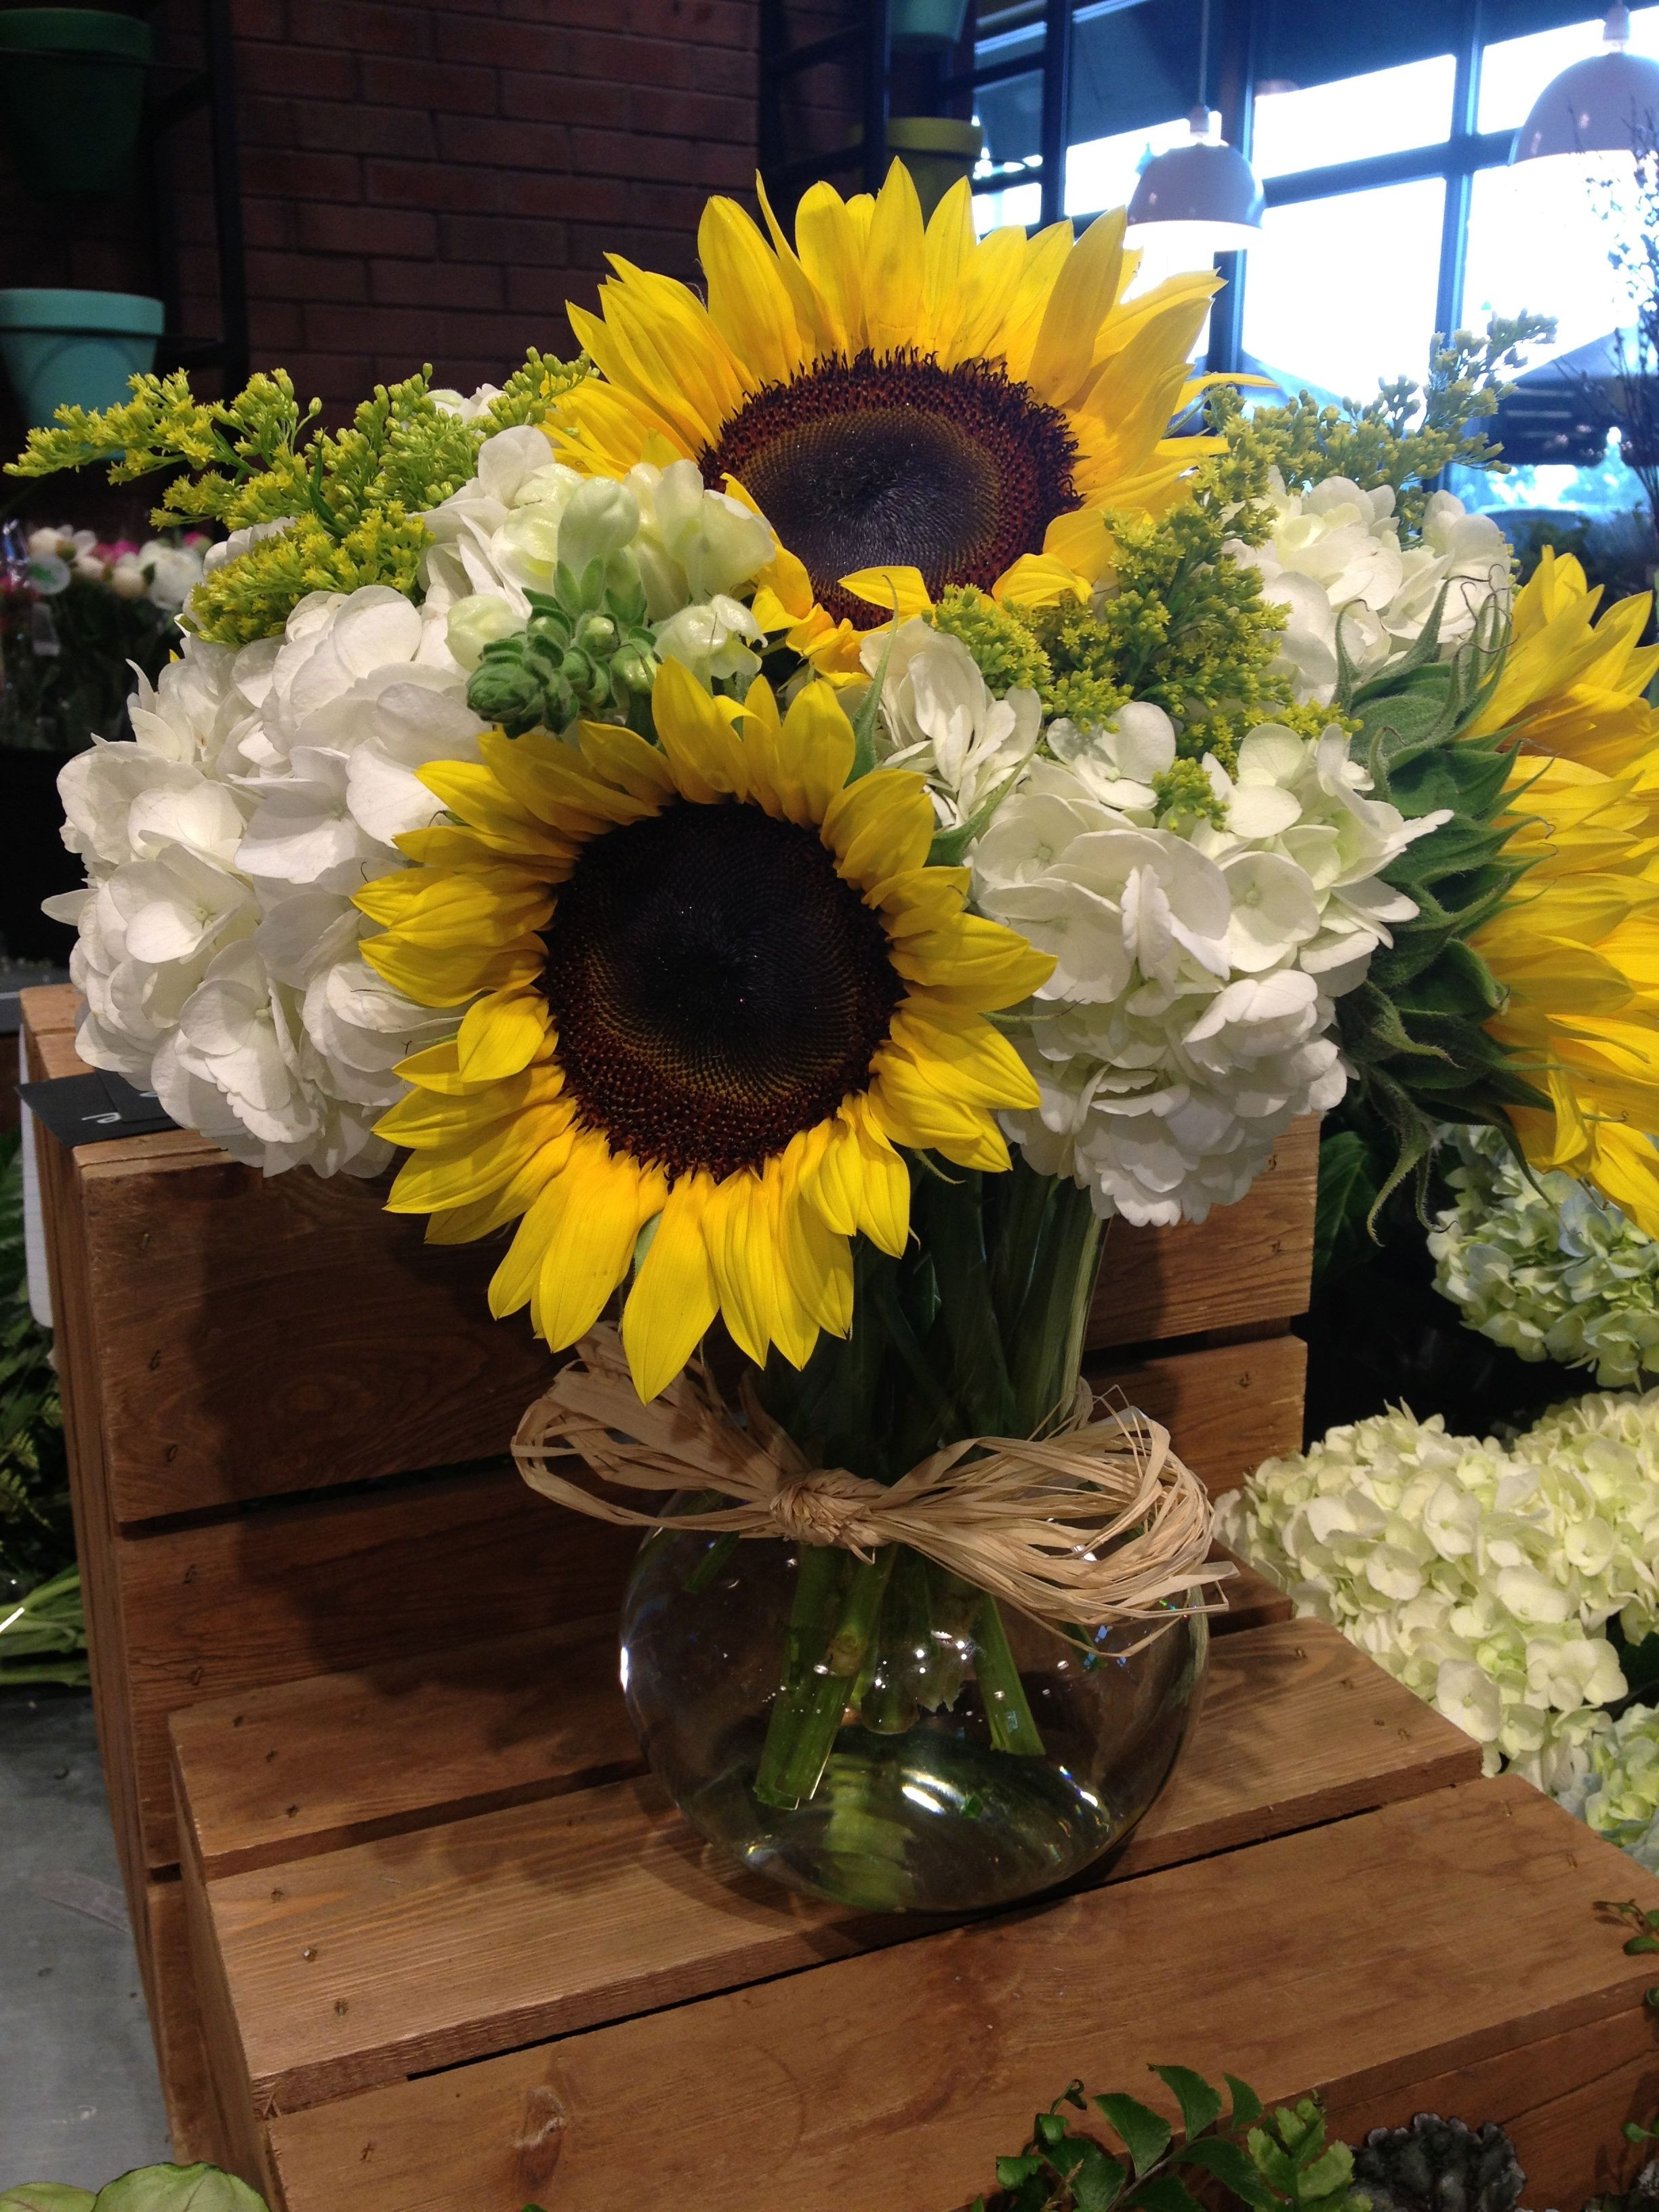 Best Online Flowers for Delivery Fresh Sunflower and Hydrangea Flower Arrangement Beautiful